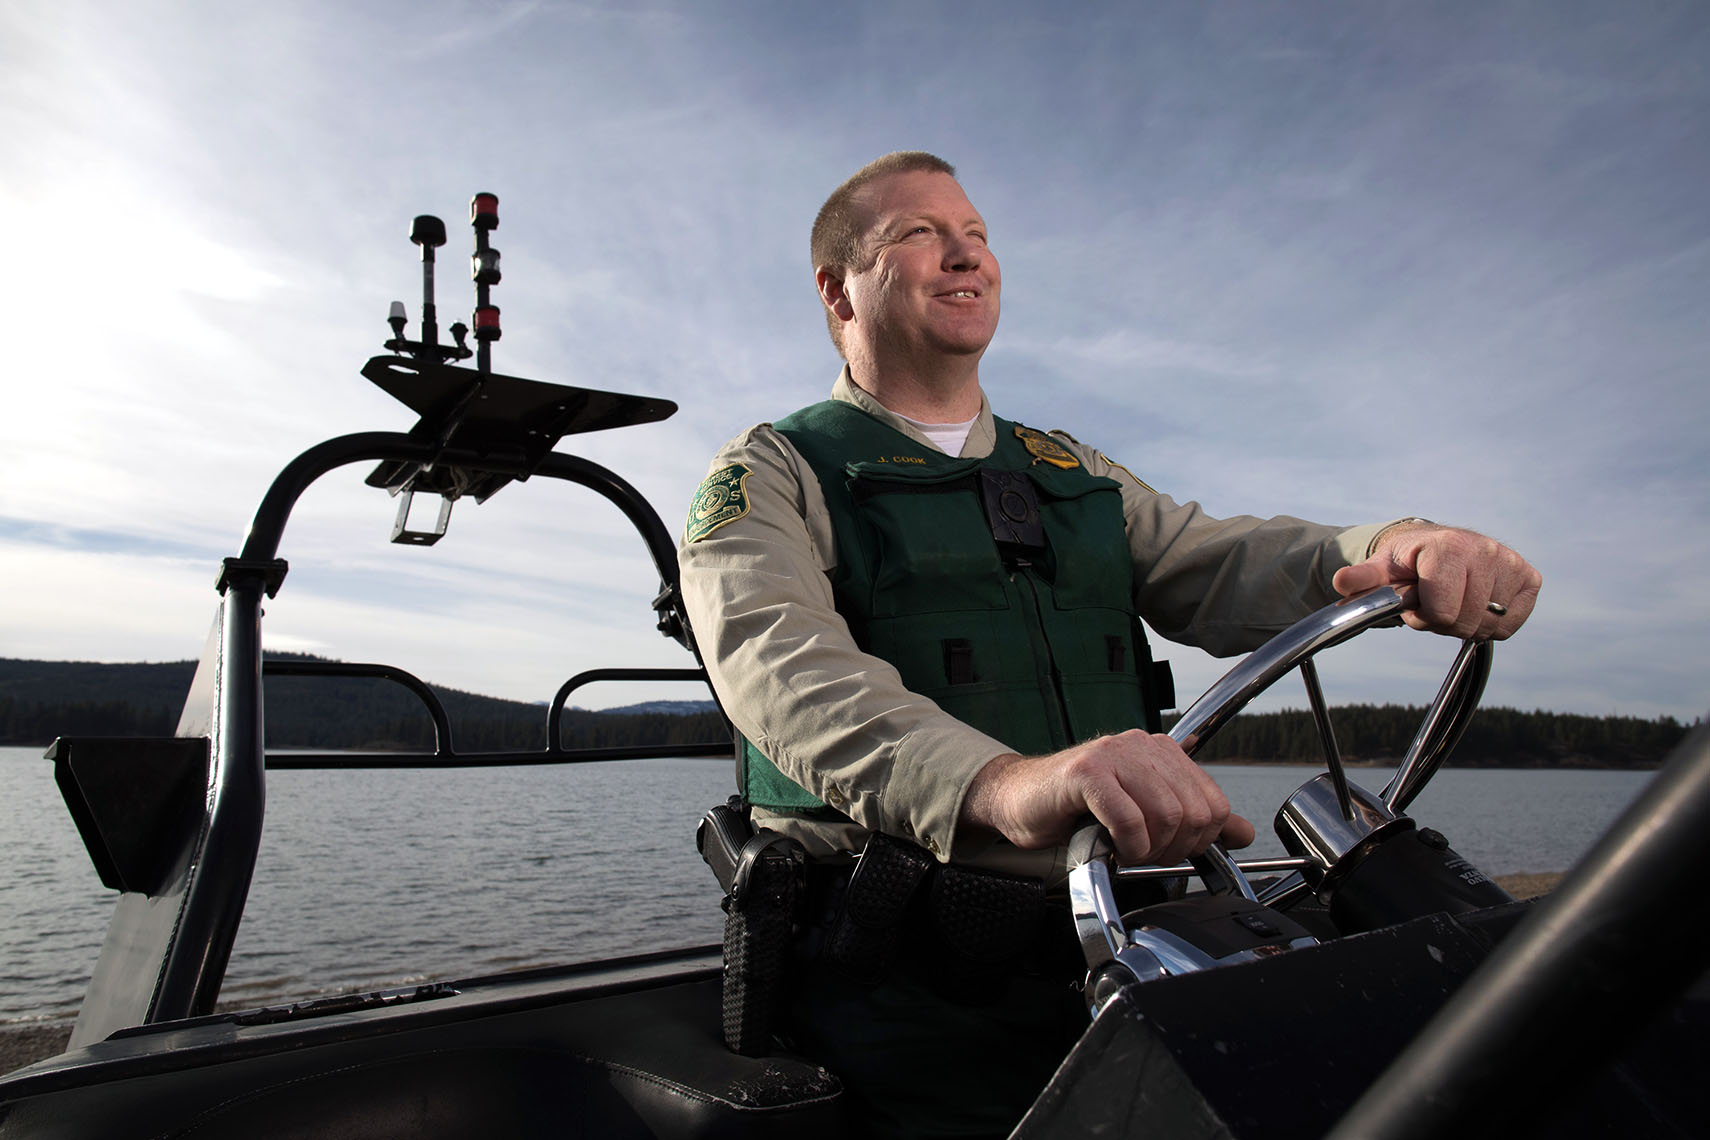 USFS agent on boat with Volvo engines